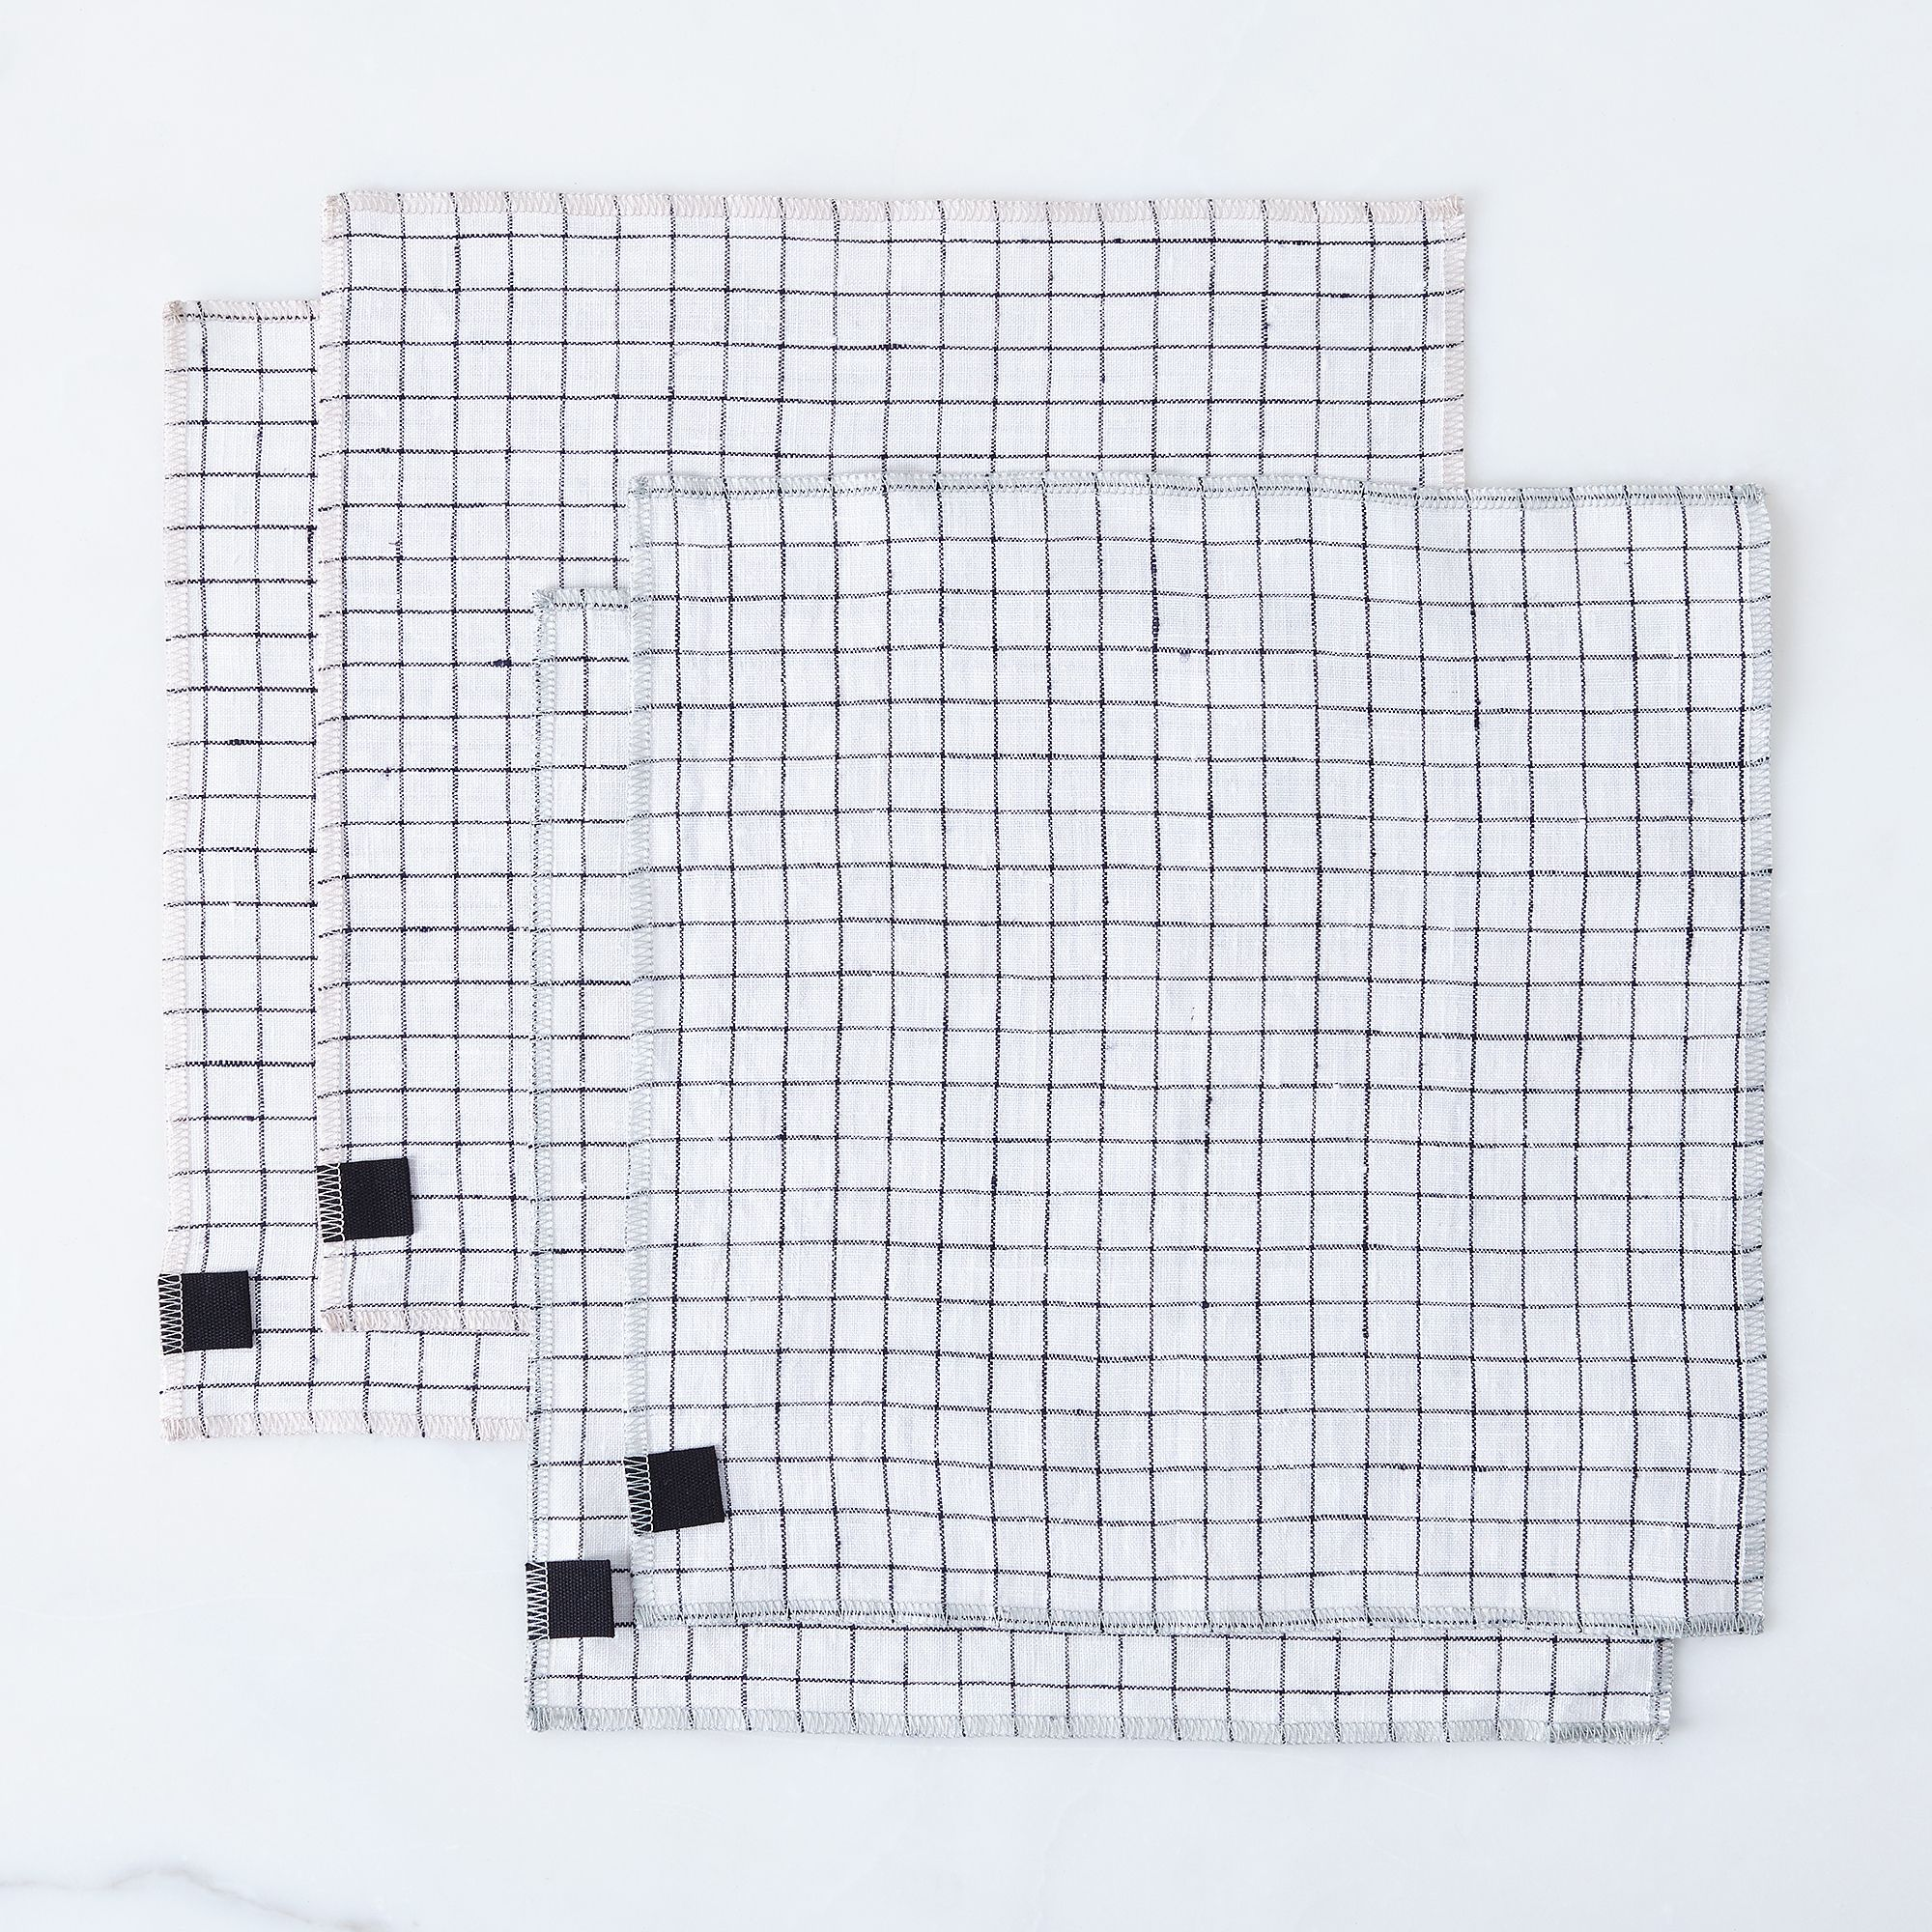 6243bda3 9dbb 4535 8e84 3dfe77662d4d  2016 0729 the everyday co windowpane check linen napkins set of 4 silo rocky luten 172